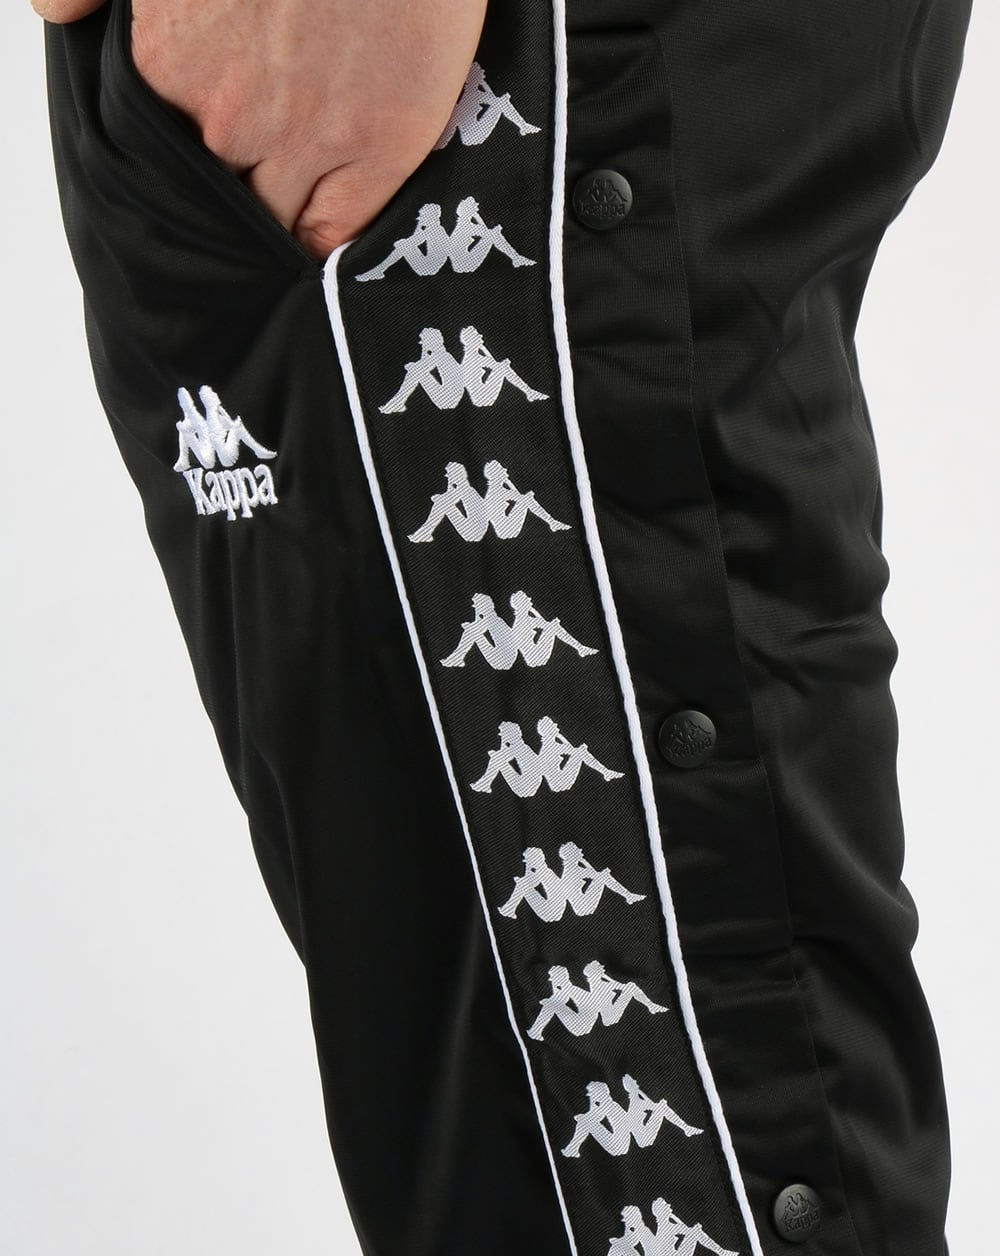 Kappa hector popper track pants black tracksuit bottoms stud for Classic uk house tracks